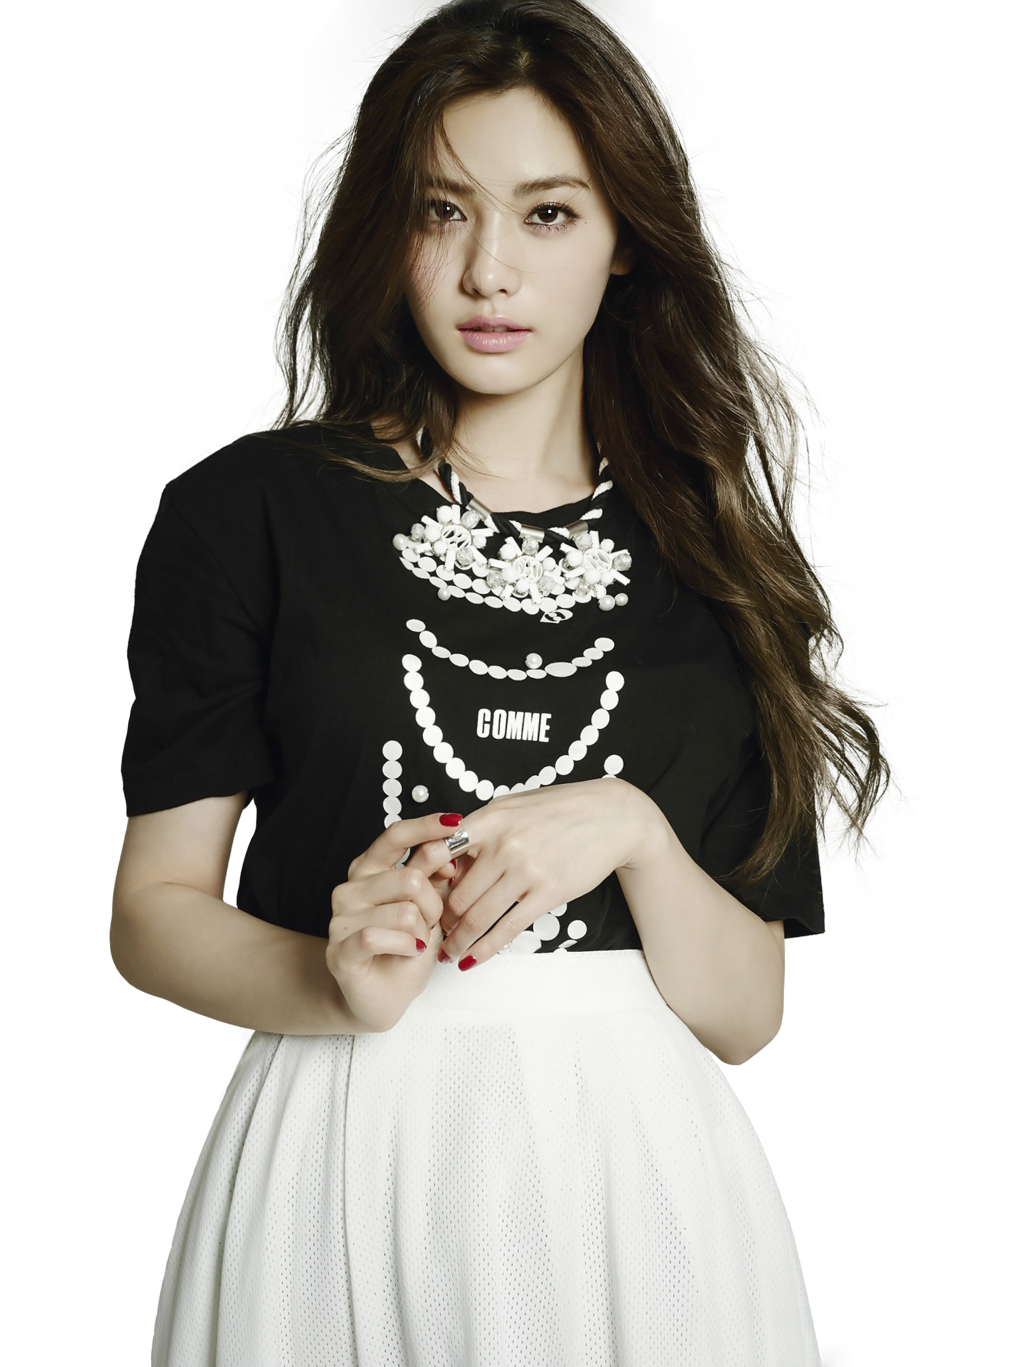 Nana After School [png] 7 by KseniaKang 1024x1367